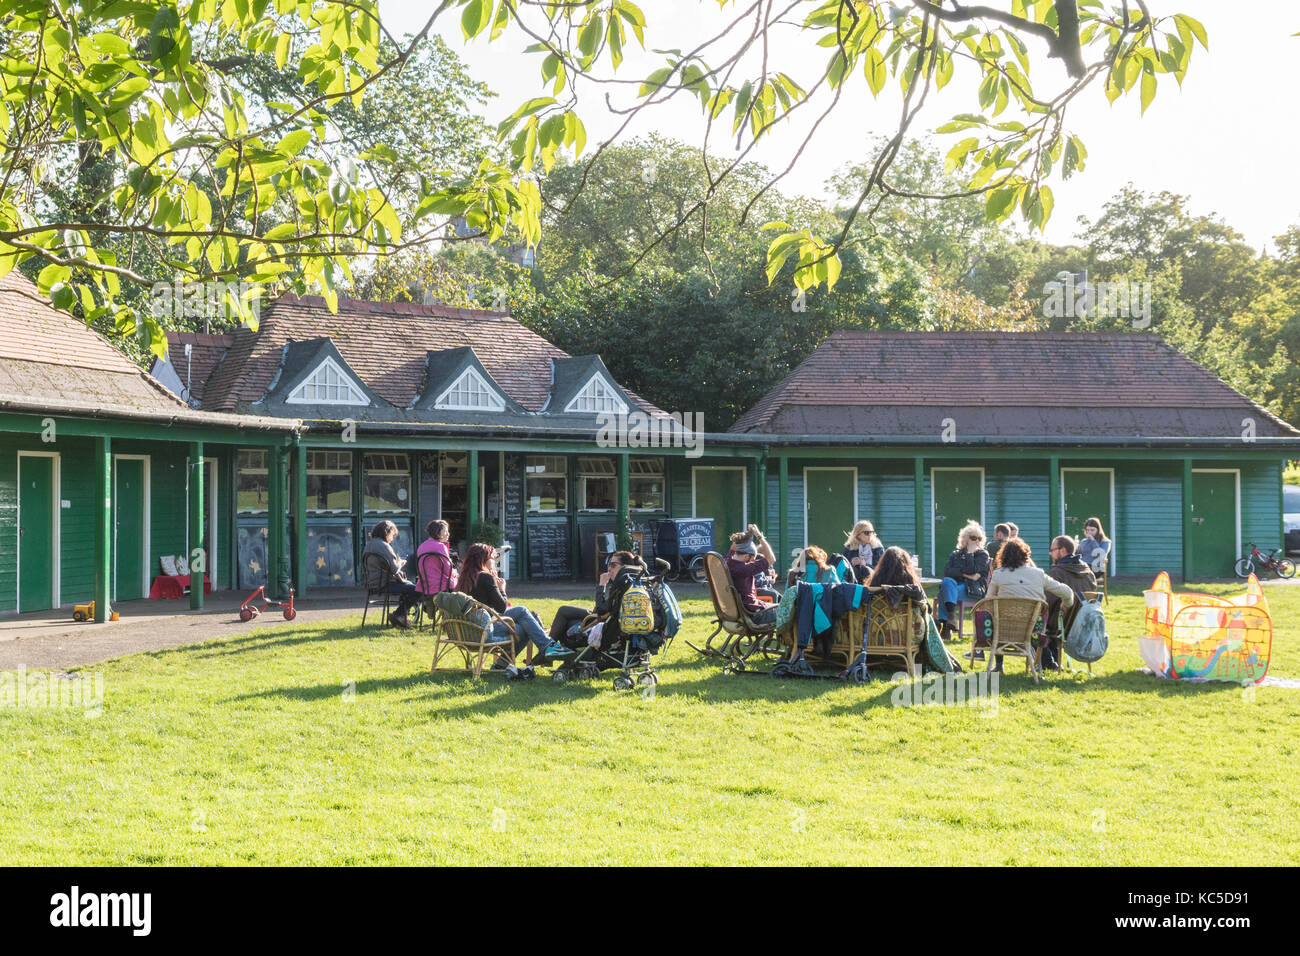 The Pavilion vegetarian cafe, The Meadows, Edinburgh, Scotland, UK - Stock Image